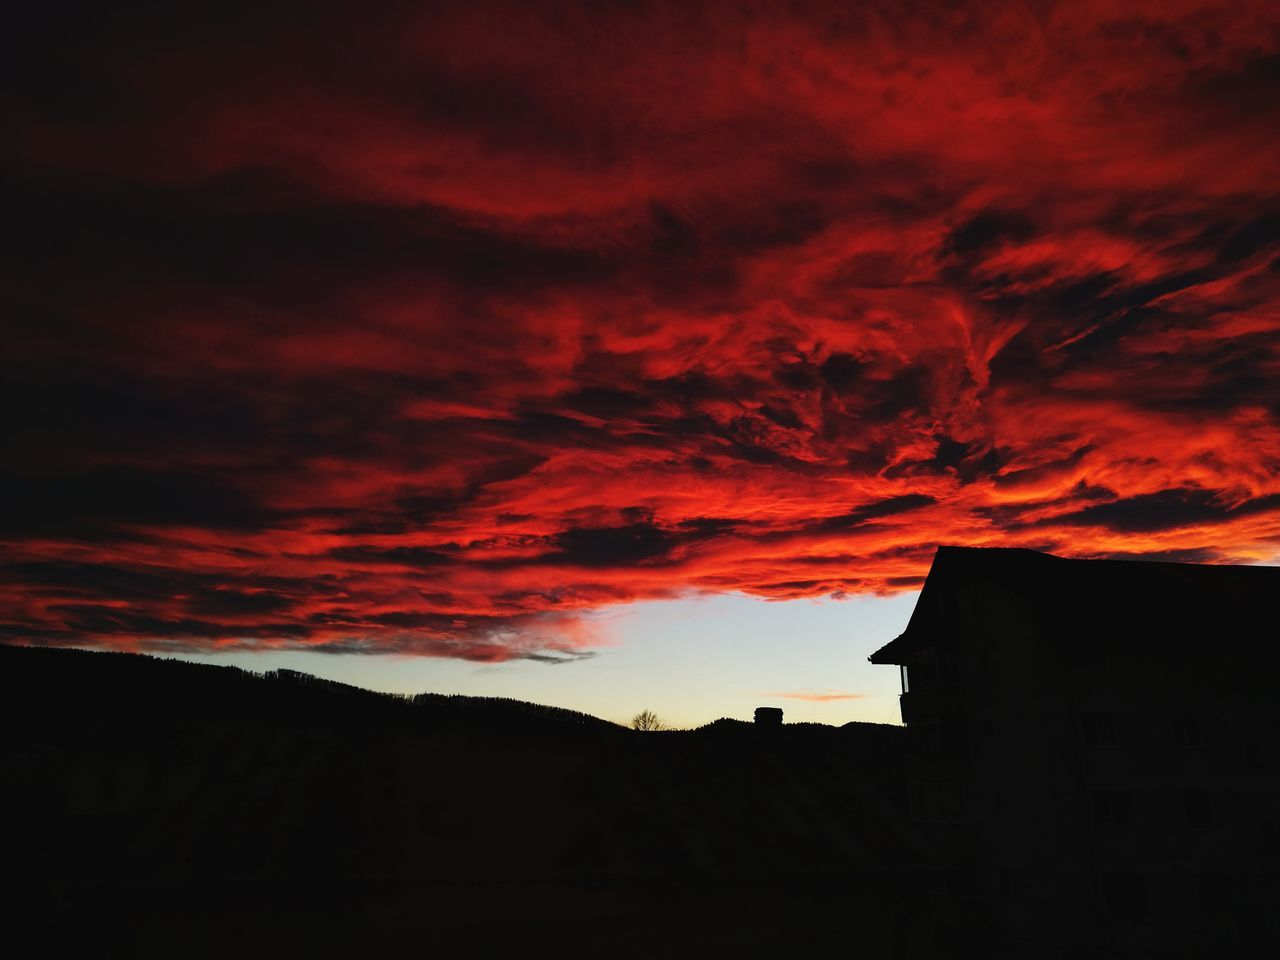 First Eyeem Photo Landscape Redness Setting Sun Cluds Rosy Sky Red Shadow Block Black Faded Sunset No People Out The Window  Red Clouds Darkness Dark Sky